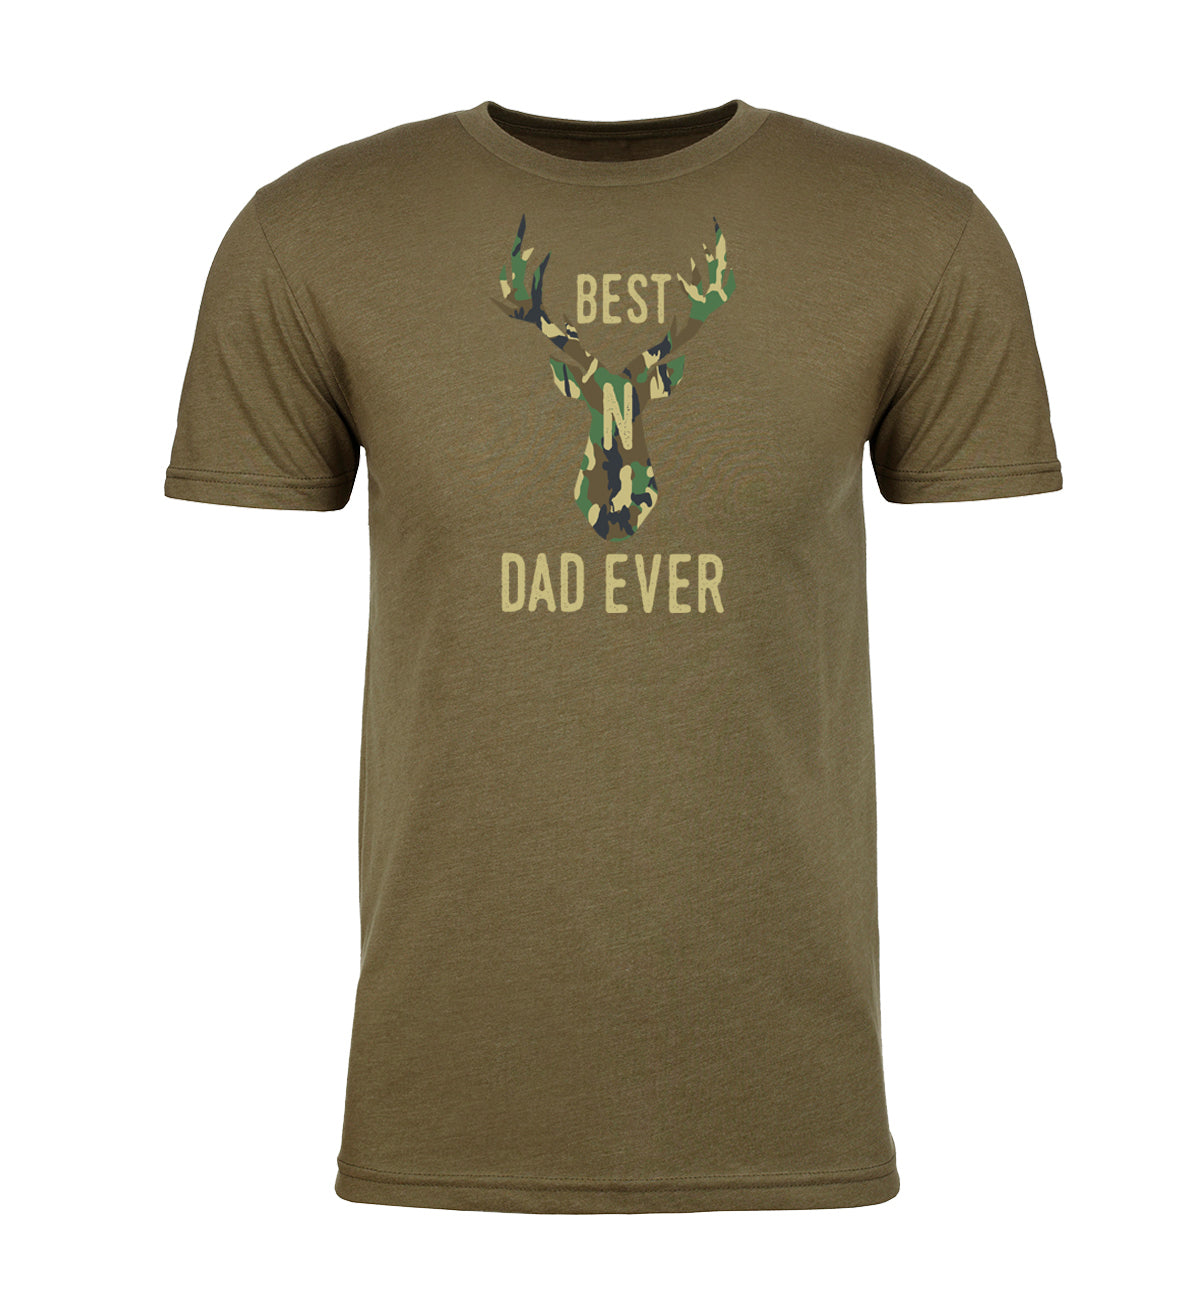 Shirt - Best Bucking Dad Ever, Men's Hunting Shirt, Funny Dad Shirts